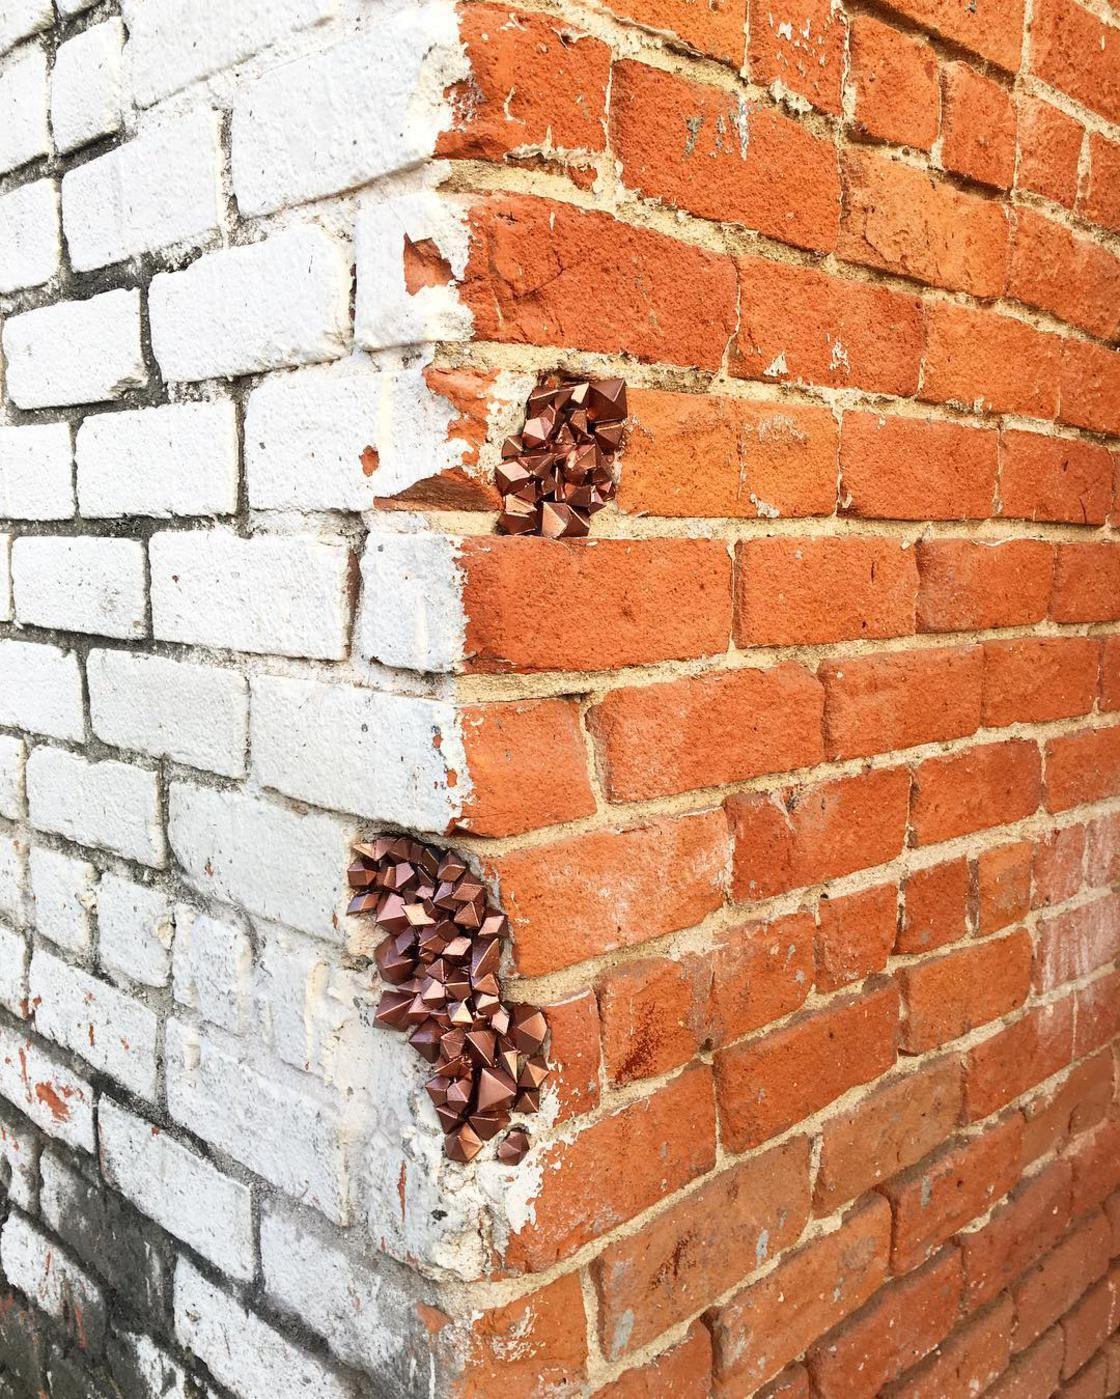 Urban Geode – This street artist fills the holes with colorful crystals